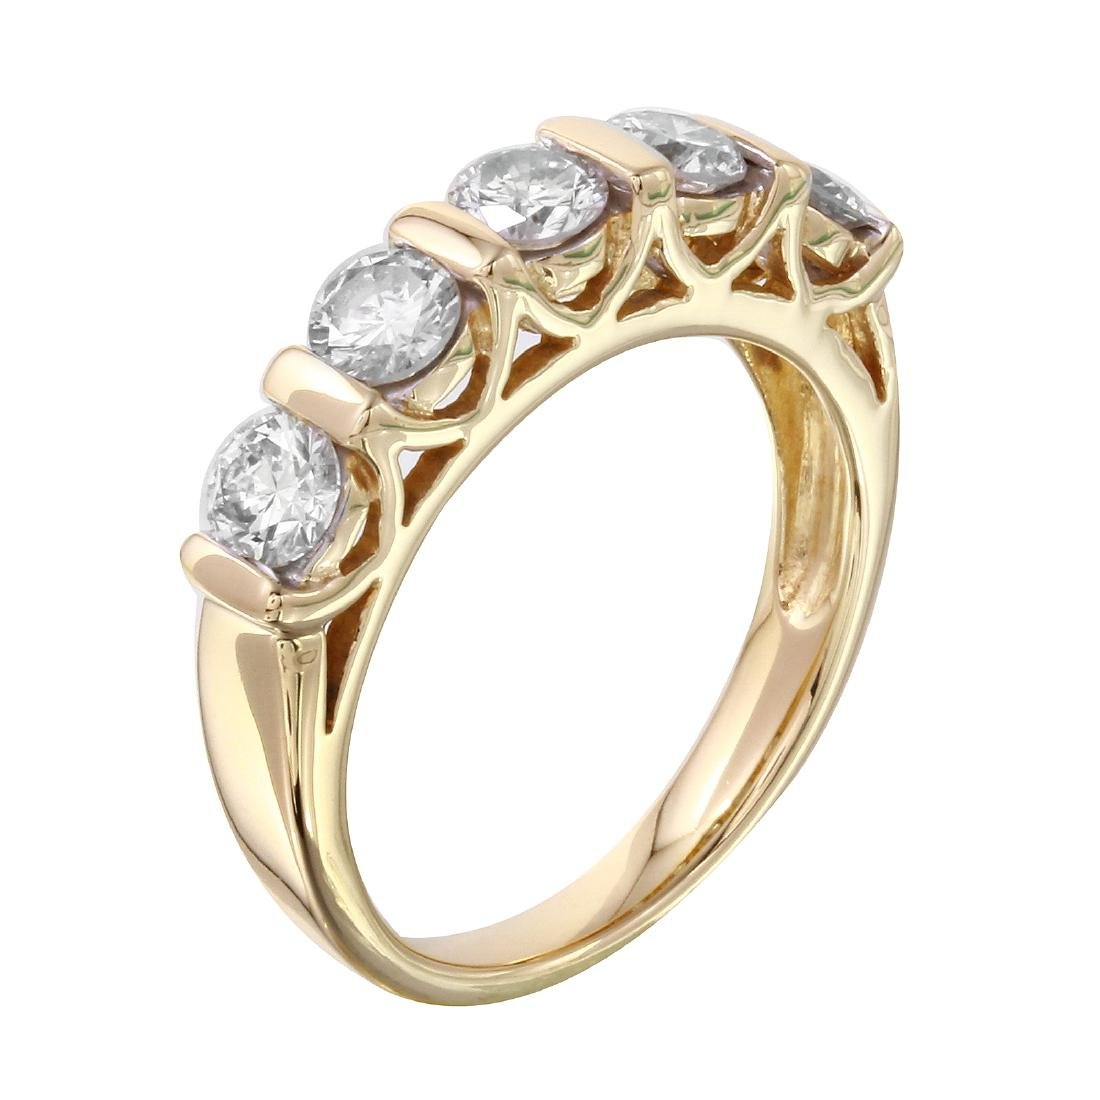 14KT Yellow Gold Diamond Ring - 2